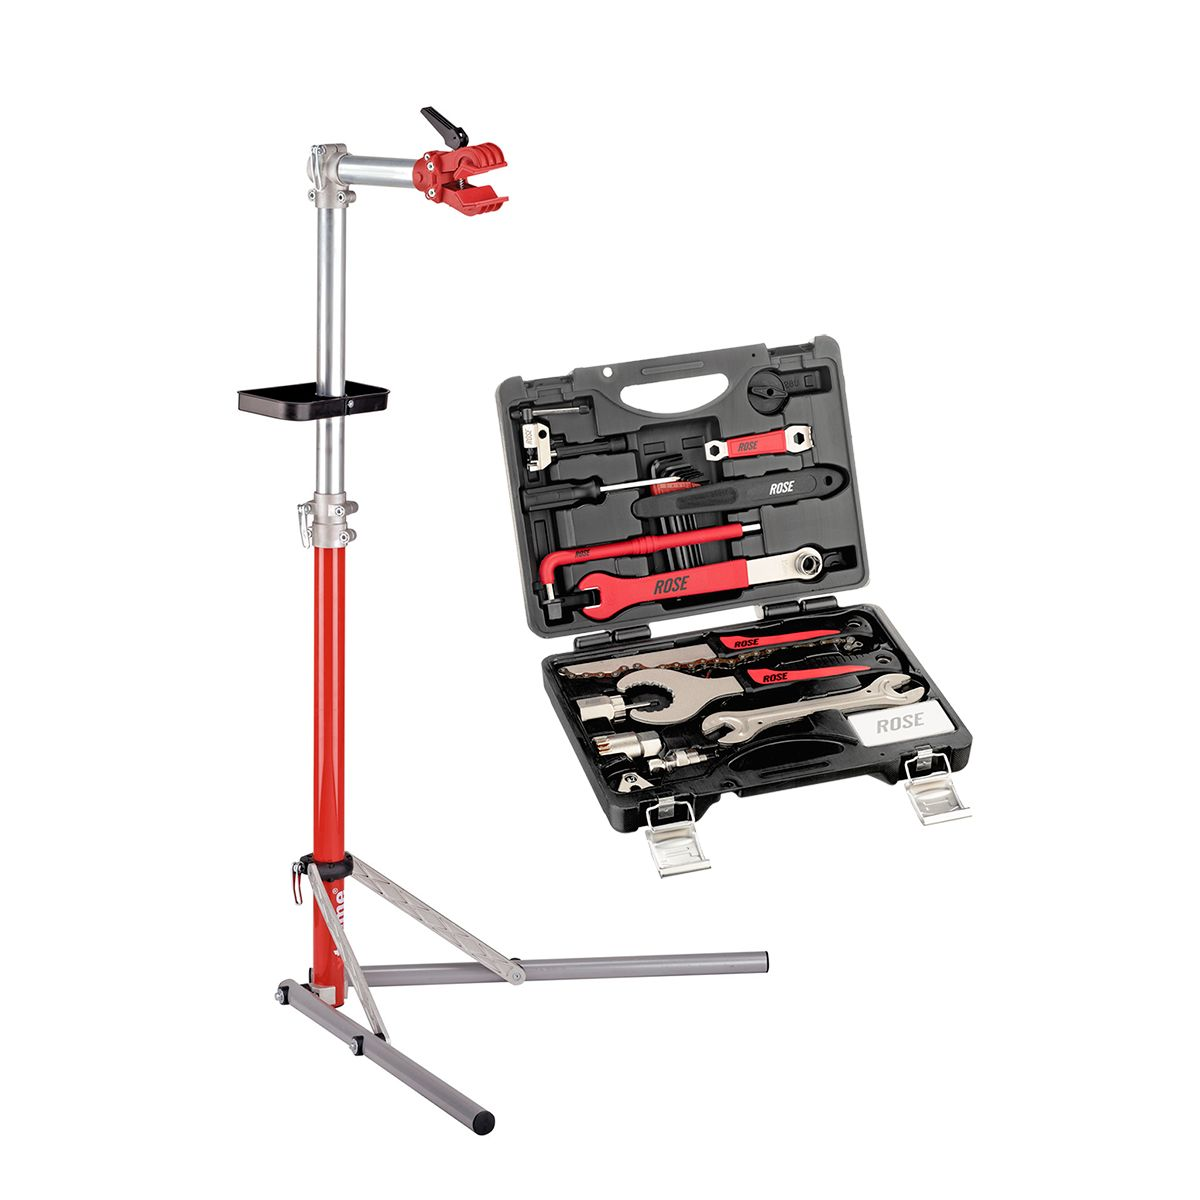 S 3000 workstand set incl. All2gether tool box